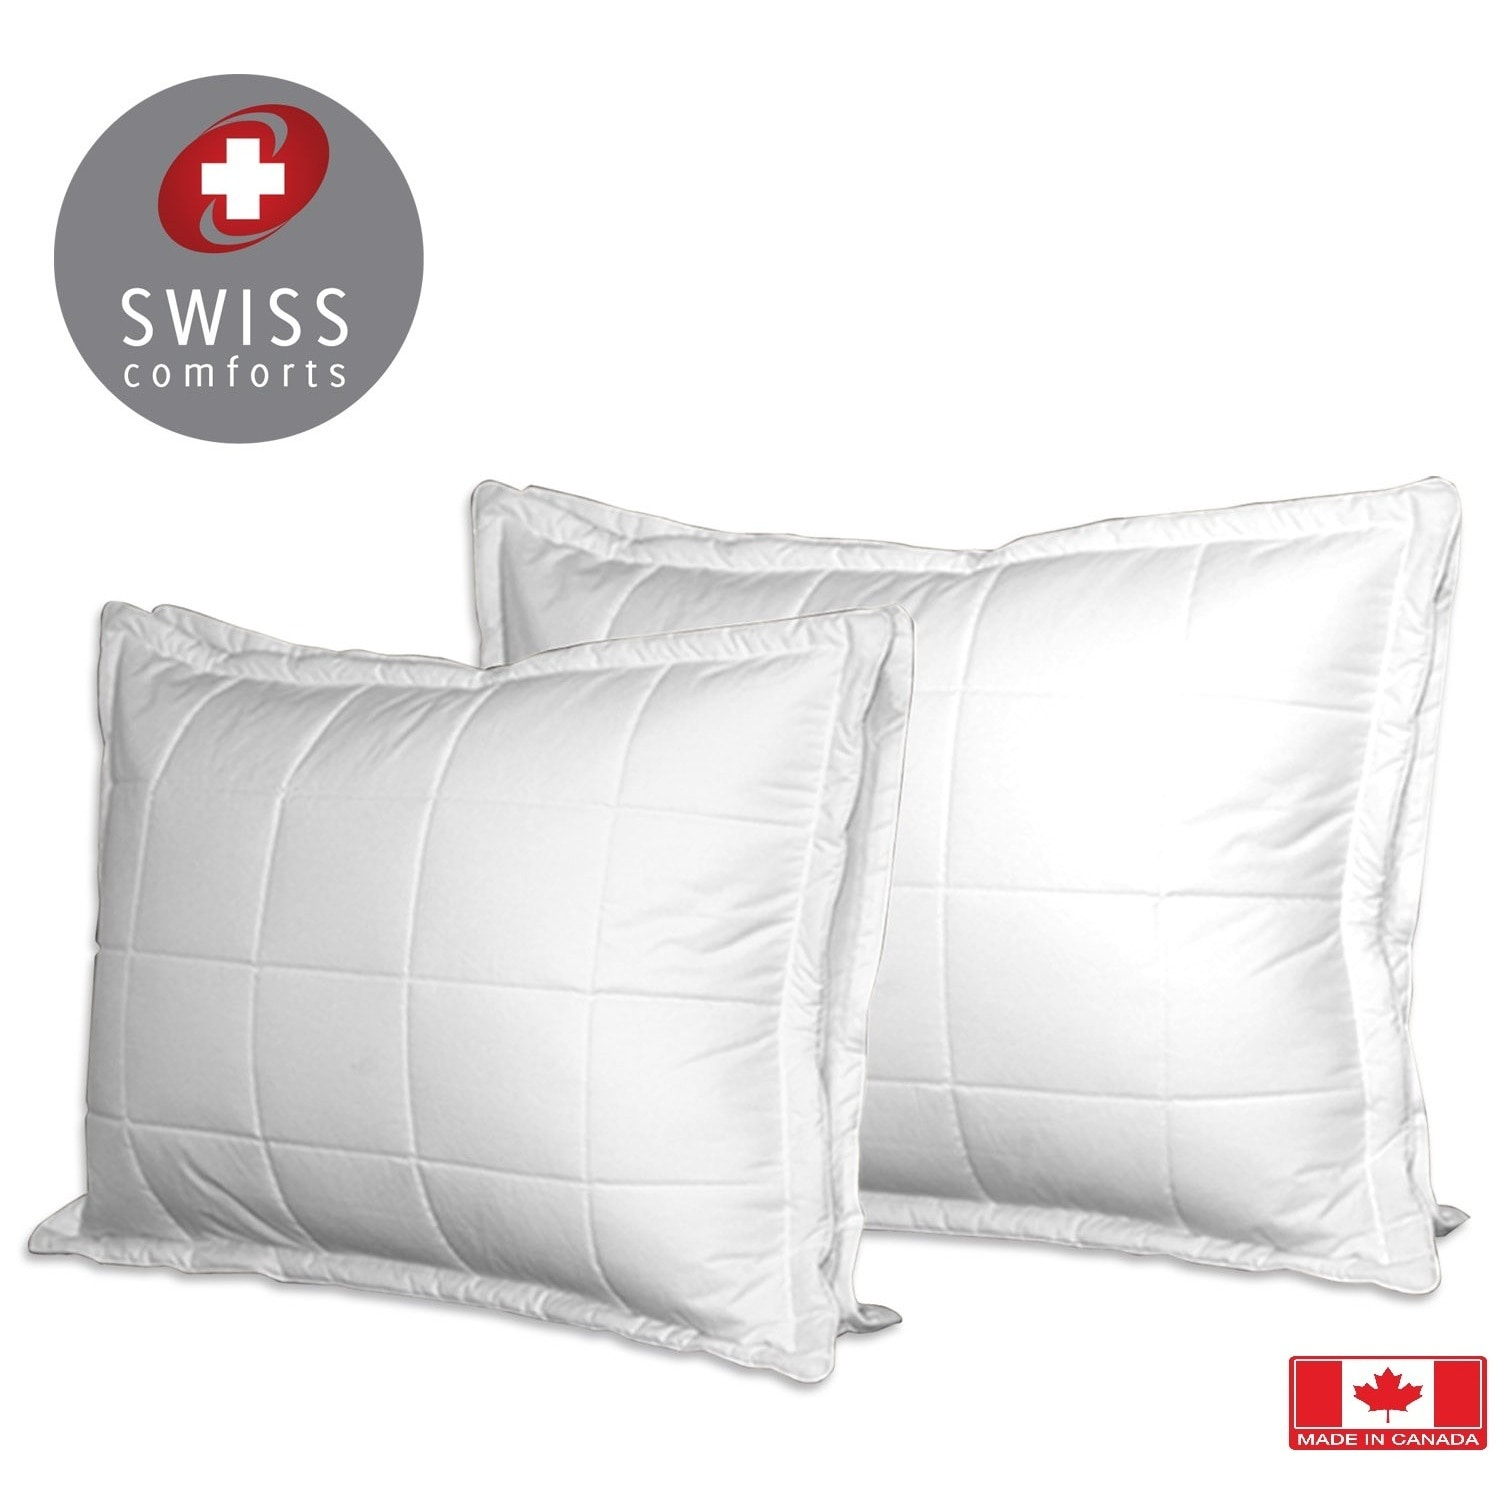 Swiss Comforts Cotton Loft Quilted Pillow Downproof Cover White Free Shipping On Orders Over 45 10884478